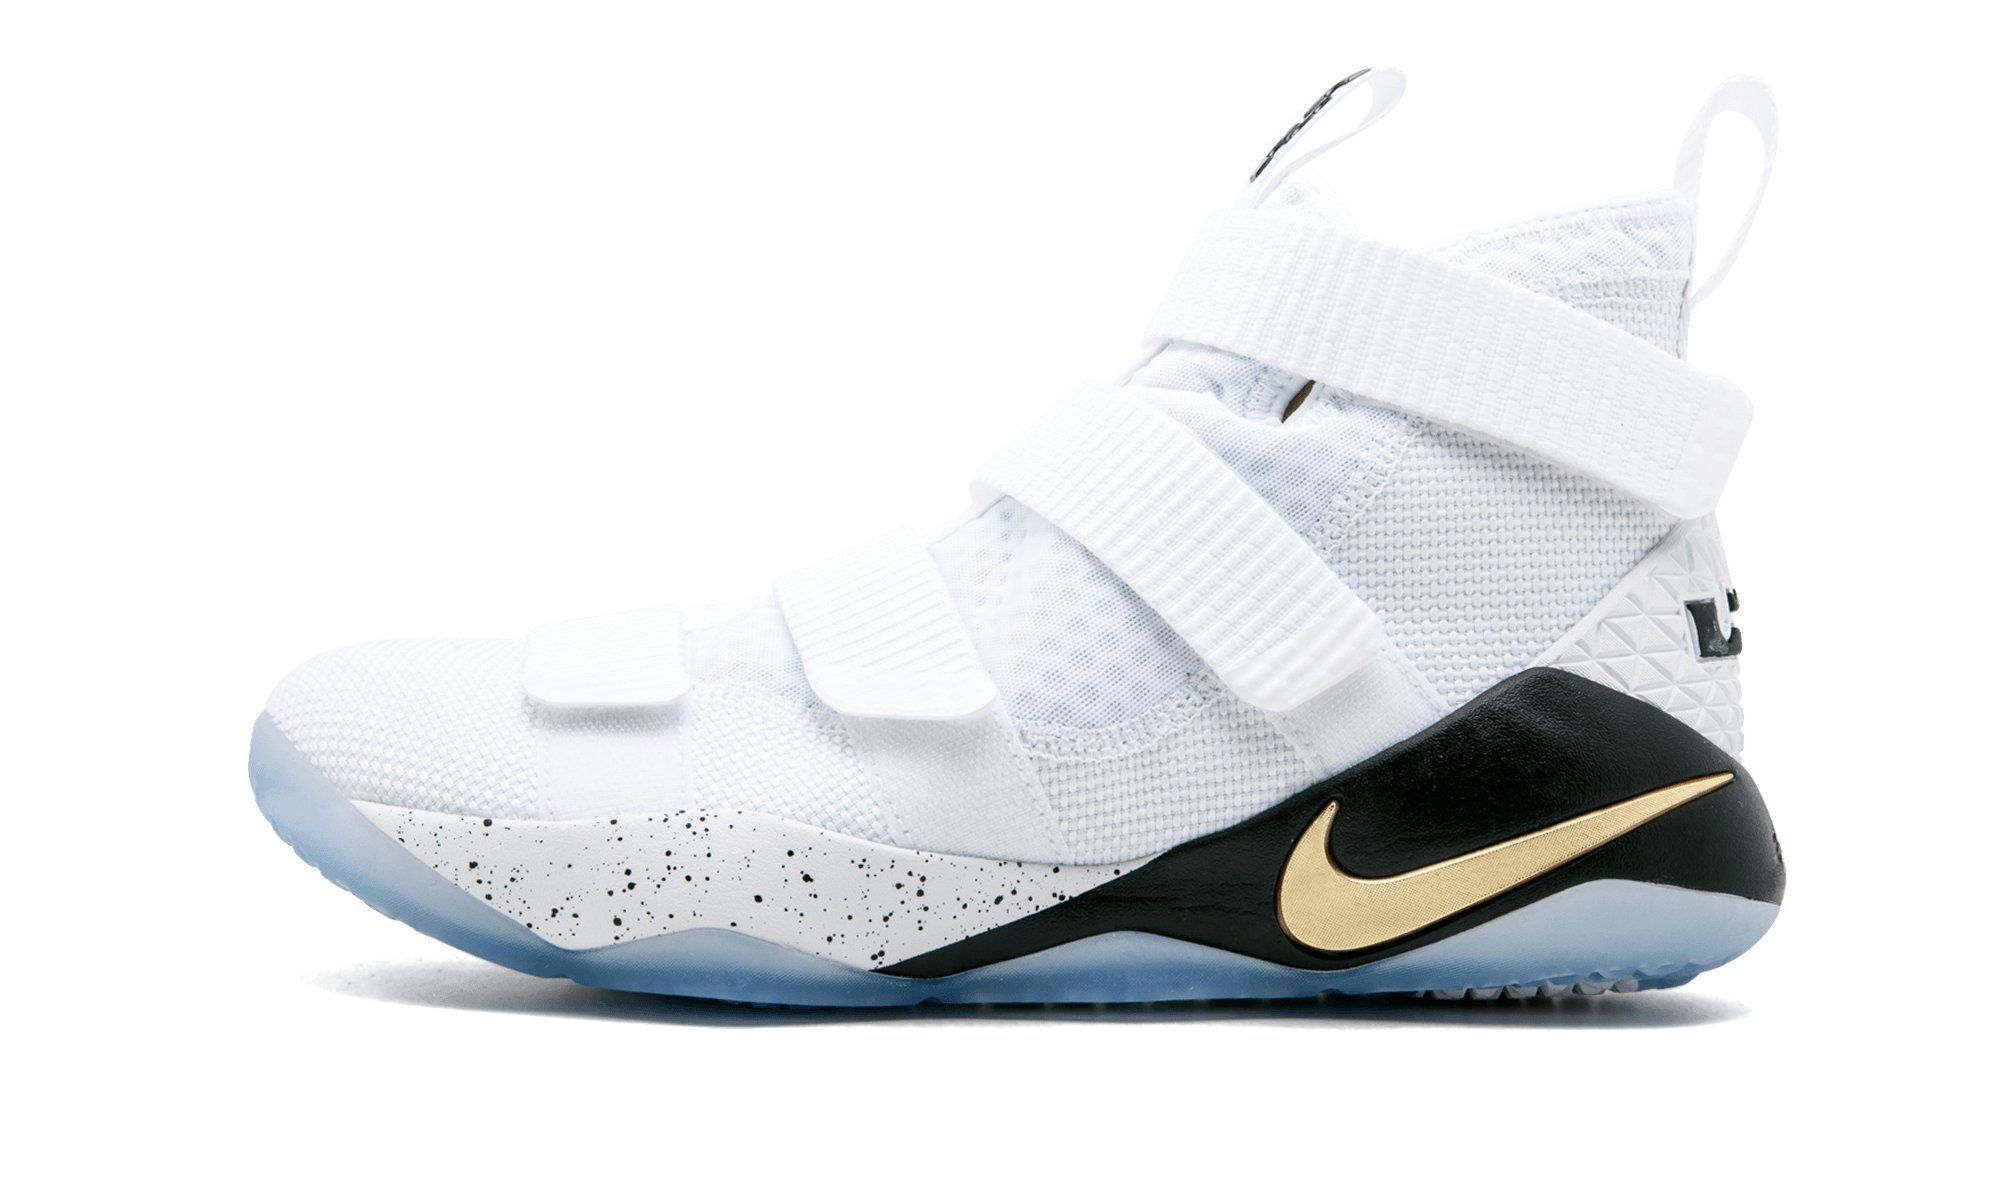 new arrivals 663a8 51dfa Galleon - Nike Lebron Soldier Xi Mens Basketball Shoes (9.5 D(M) US,  White Black-Metallic Gold)